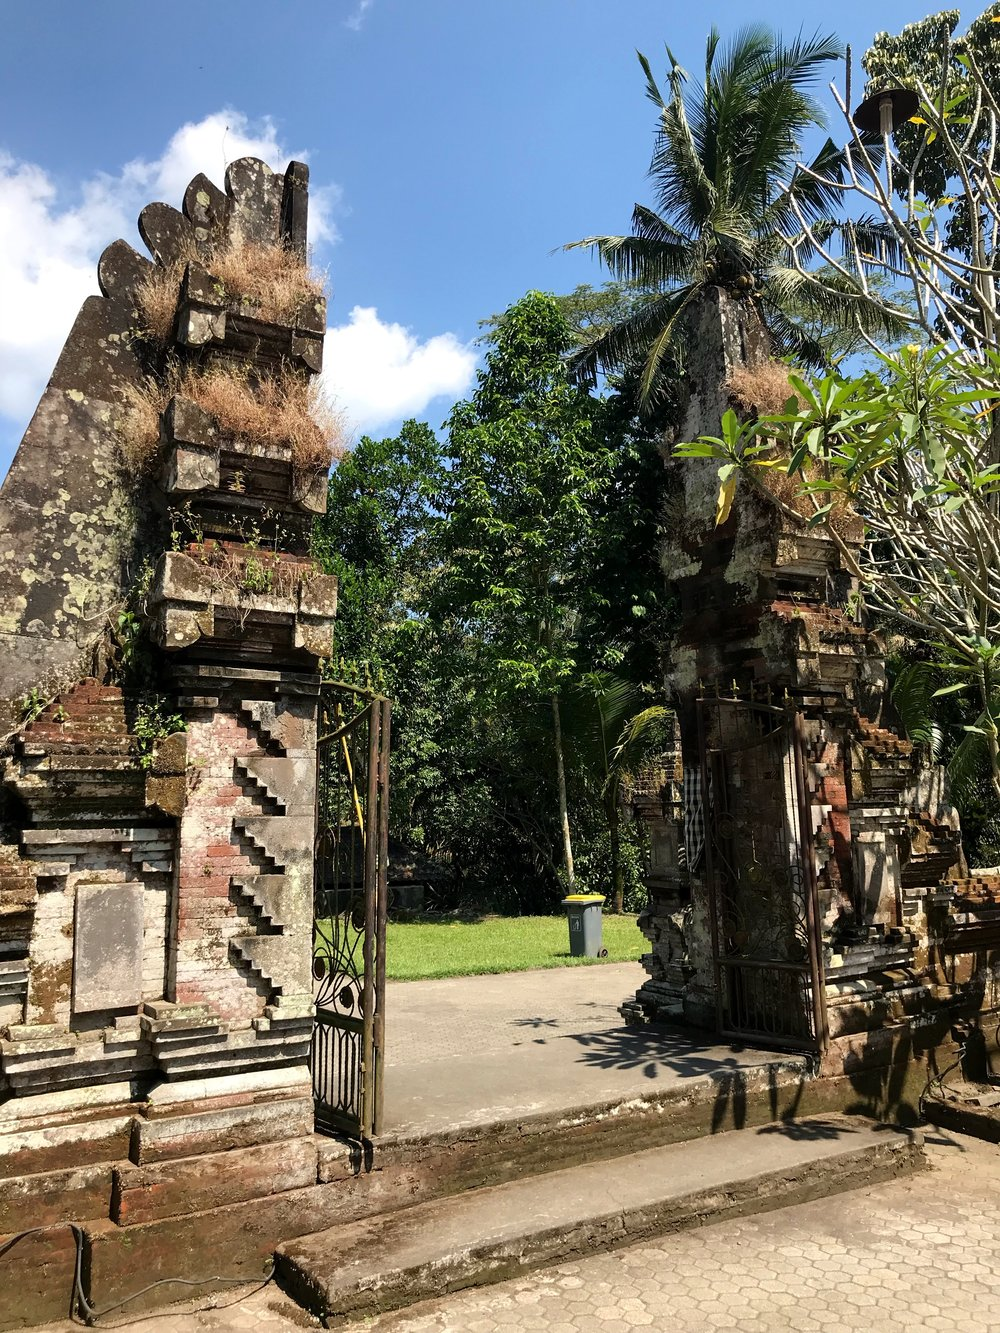 A typical split gate found at many Balinese temples